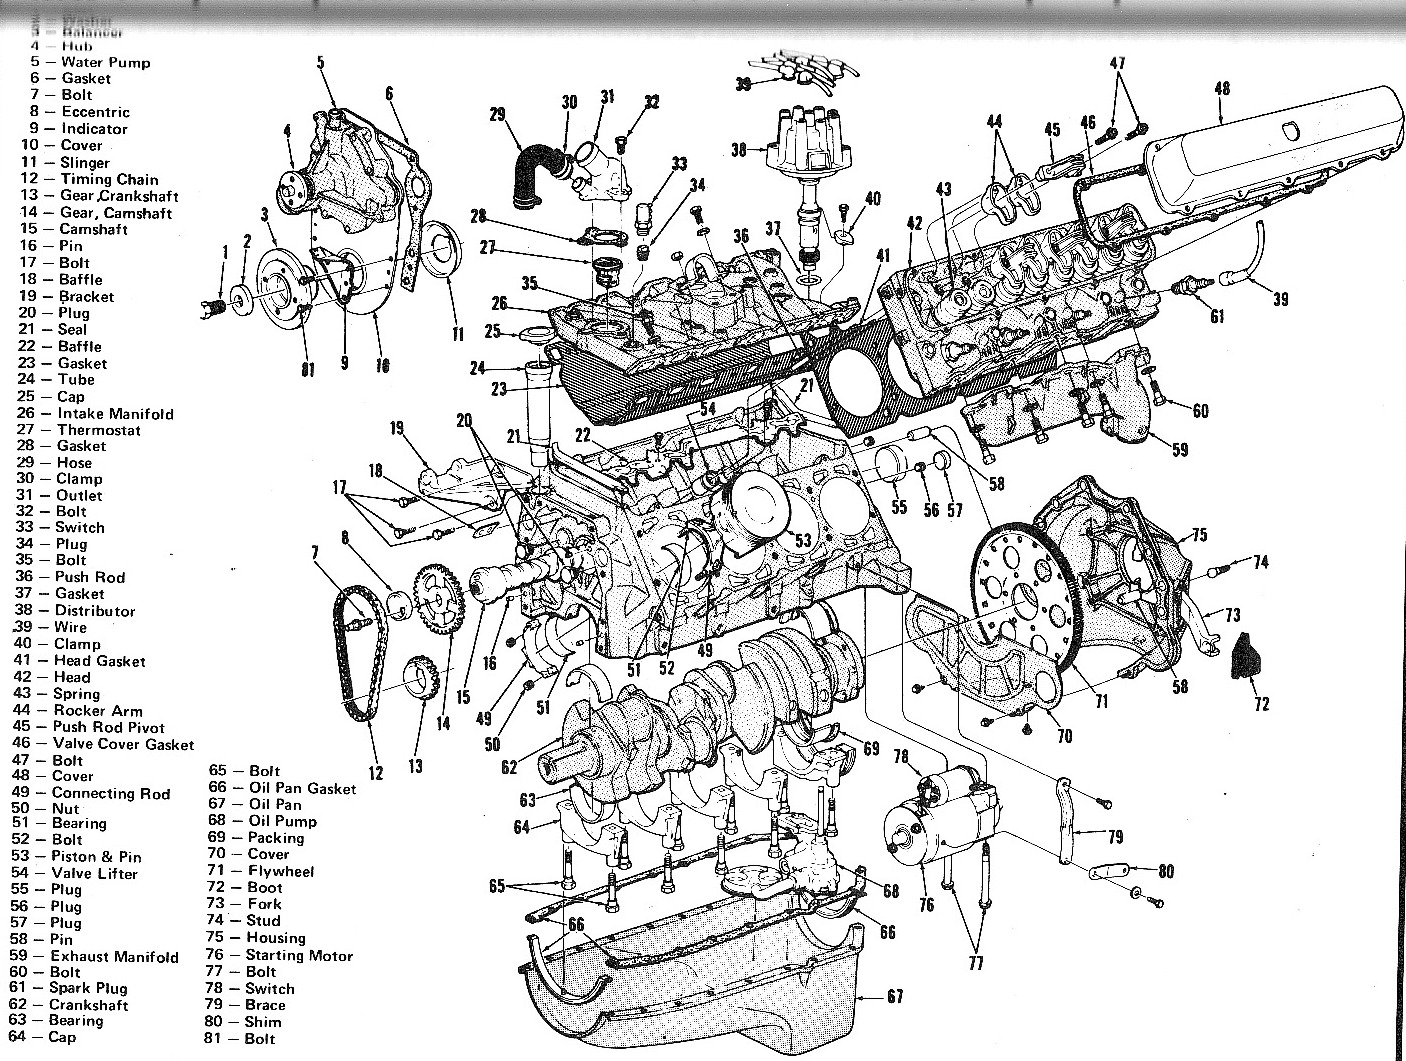 2000 oldsmobile engine diagram electrical wiring diagram 2000 oldsmobile engine diagram [ 1406 x 1061 Pixel ]